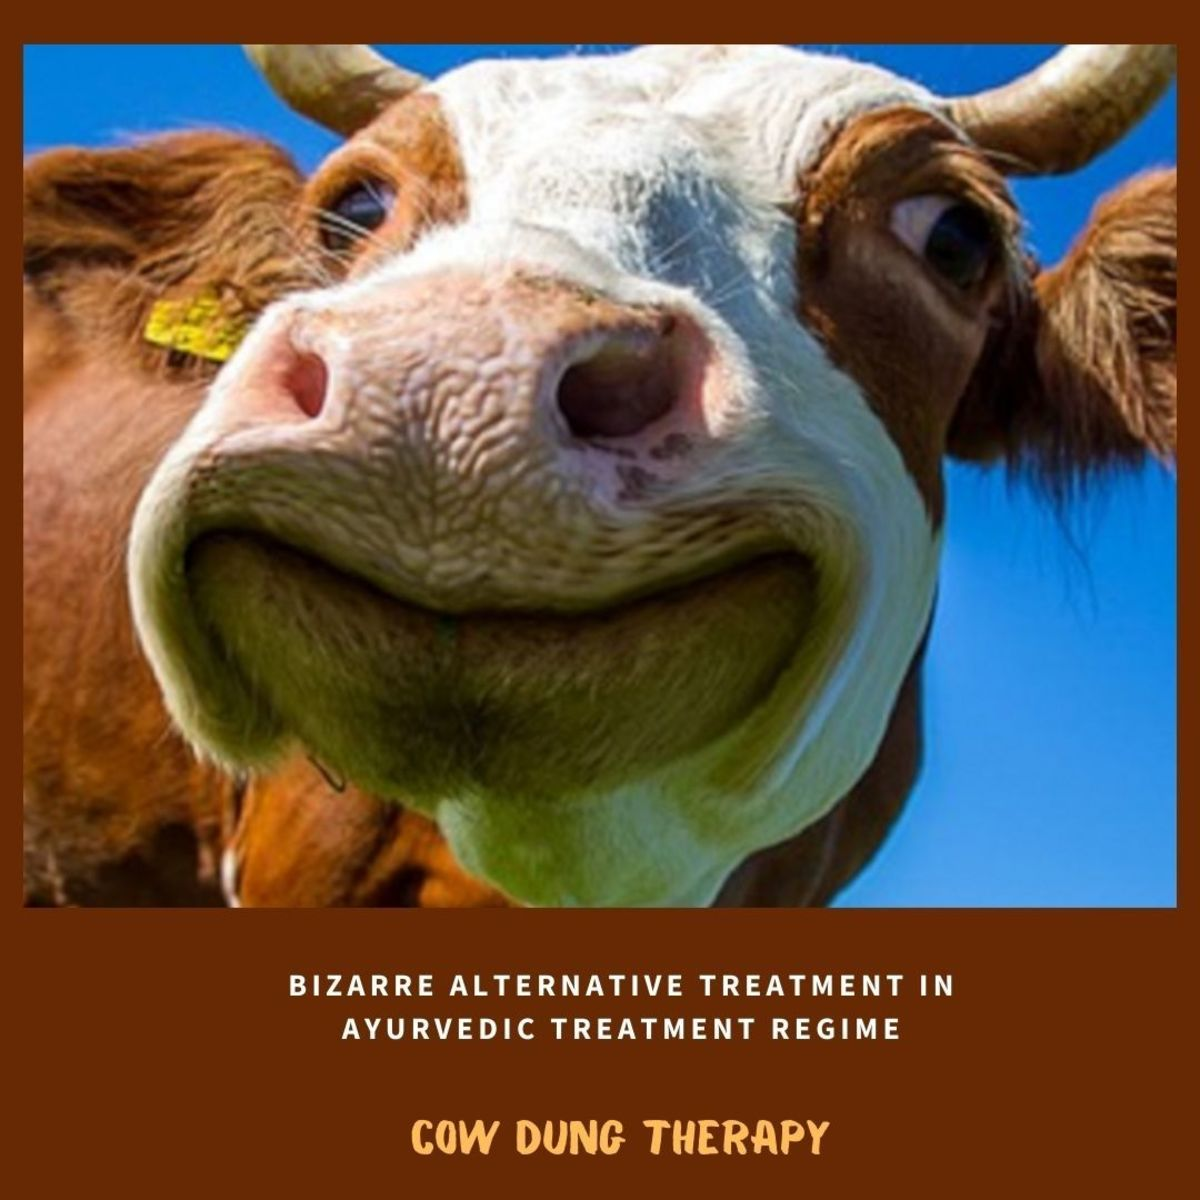 Cow dung therapy is part of the Ayurvedic treatment regime to treat diabetes, arthritis and cancer